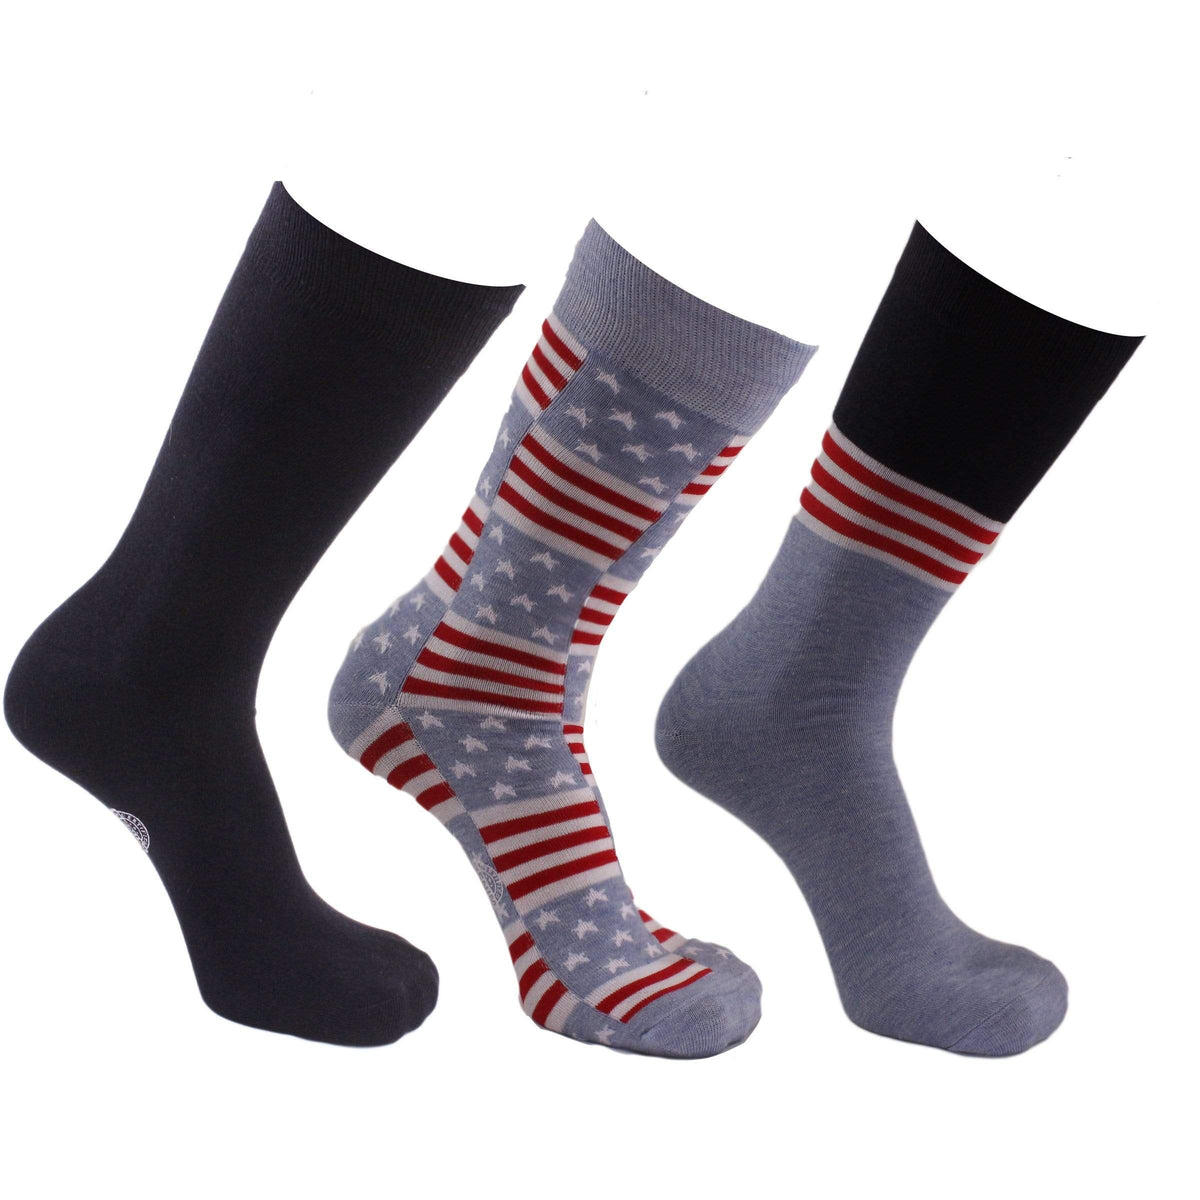 Stars & Stripes 3 Pack Crew Socks Red / White / Blue